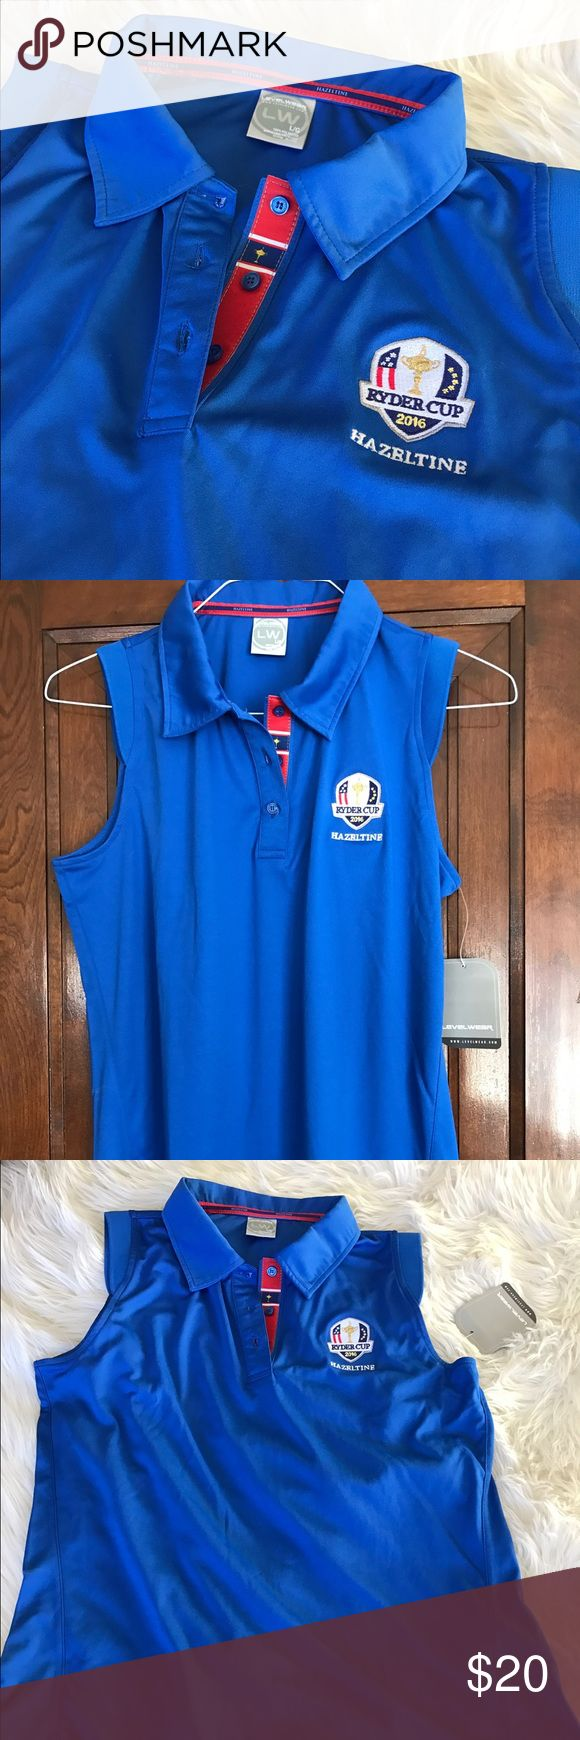 Sleeveless Ryder Cup Golf Polo Authentic apparel from the 2016 Ryder Cup at Hazeltine National Golf Club!  Sleeveless polo with capped detail at shoulders.  100% polyester. Machine wash cold. Tumble dry low. Levelwear Tops